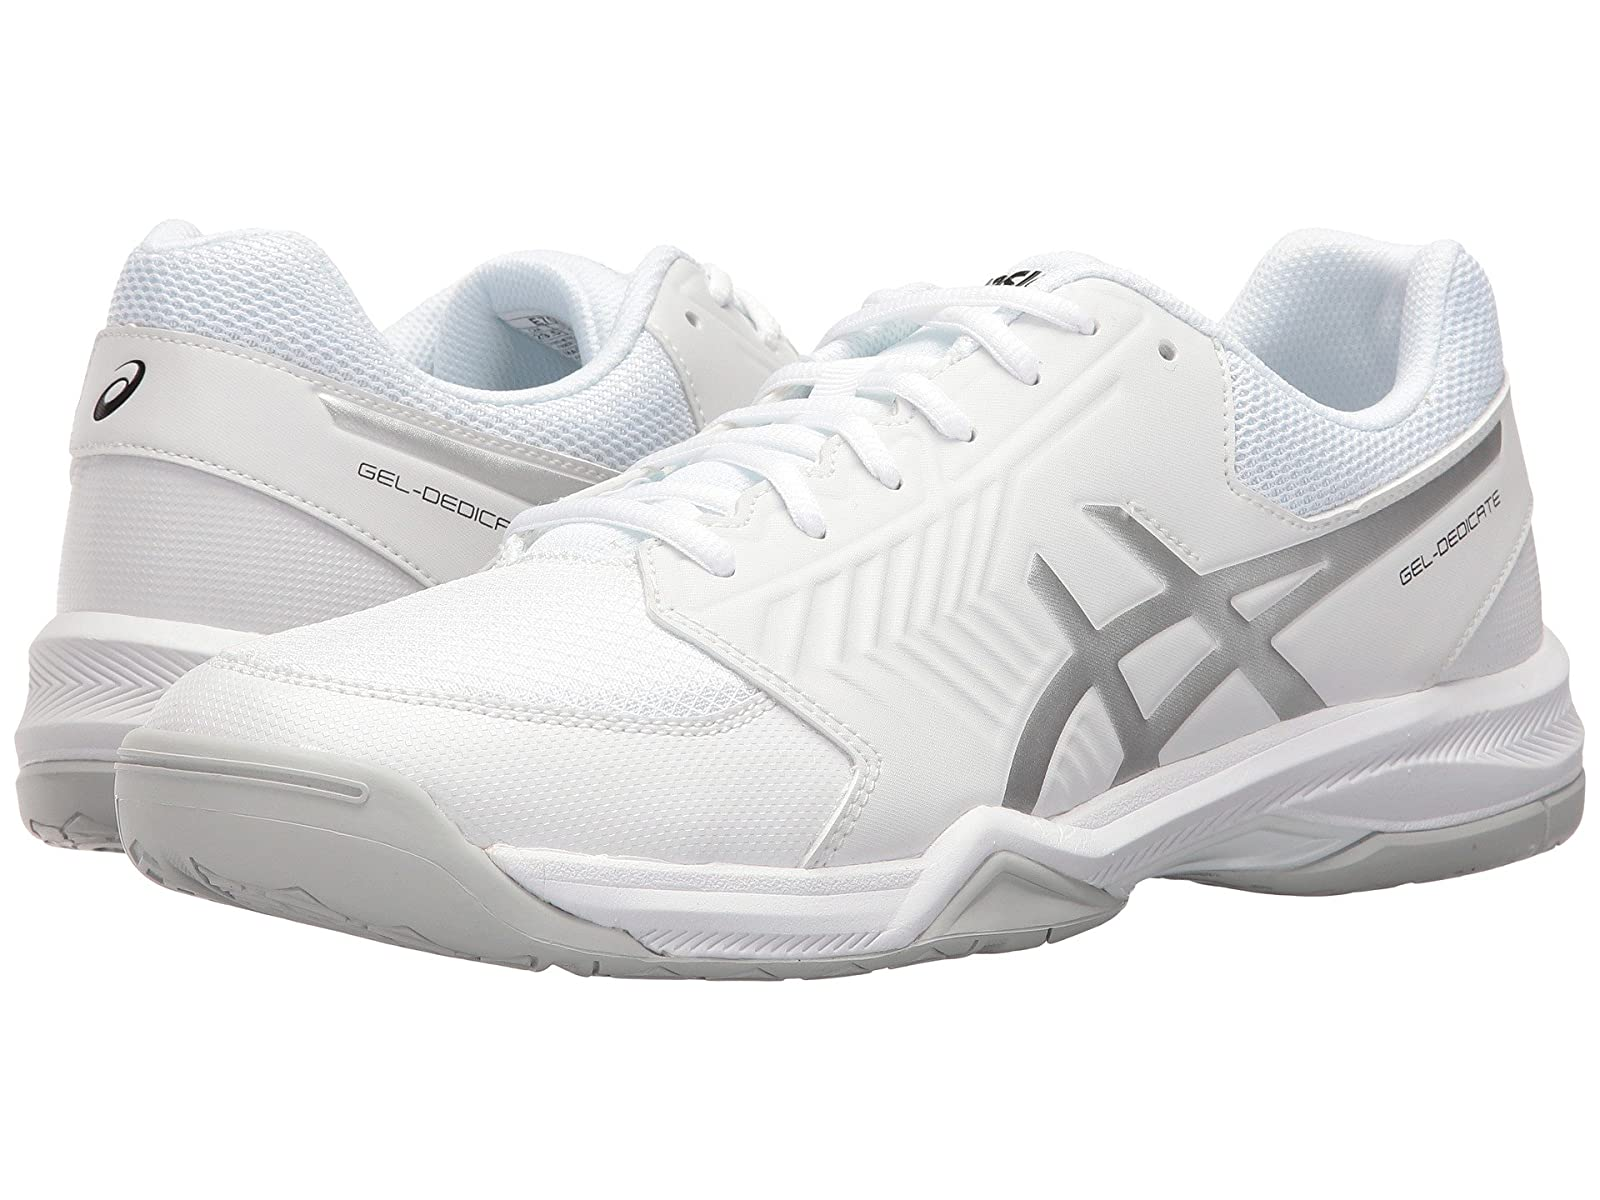 ASICS Gel-Dedicate 5Atmospheric grades have affordable shoes